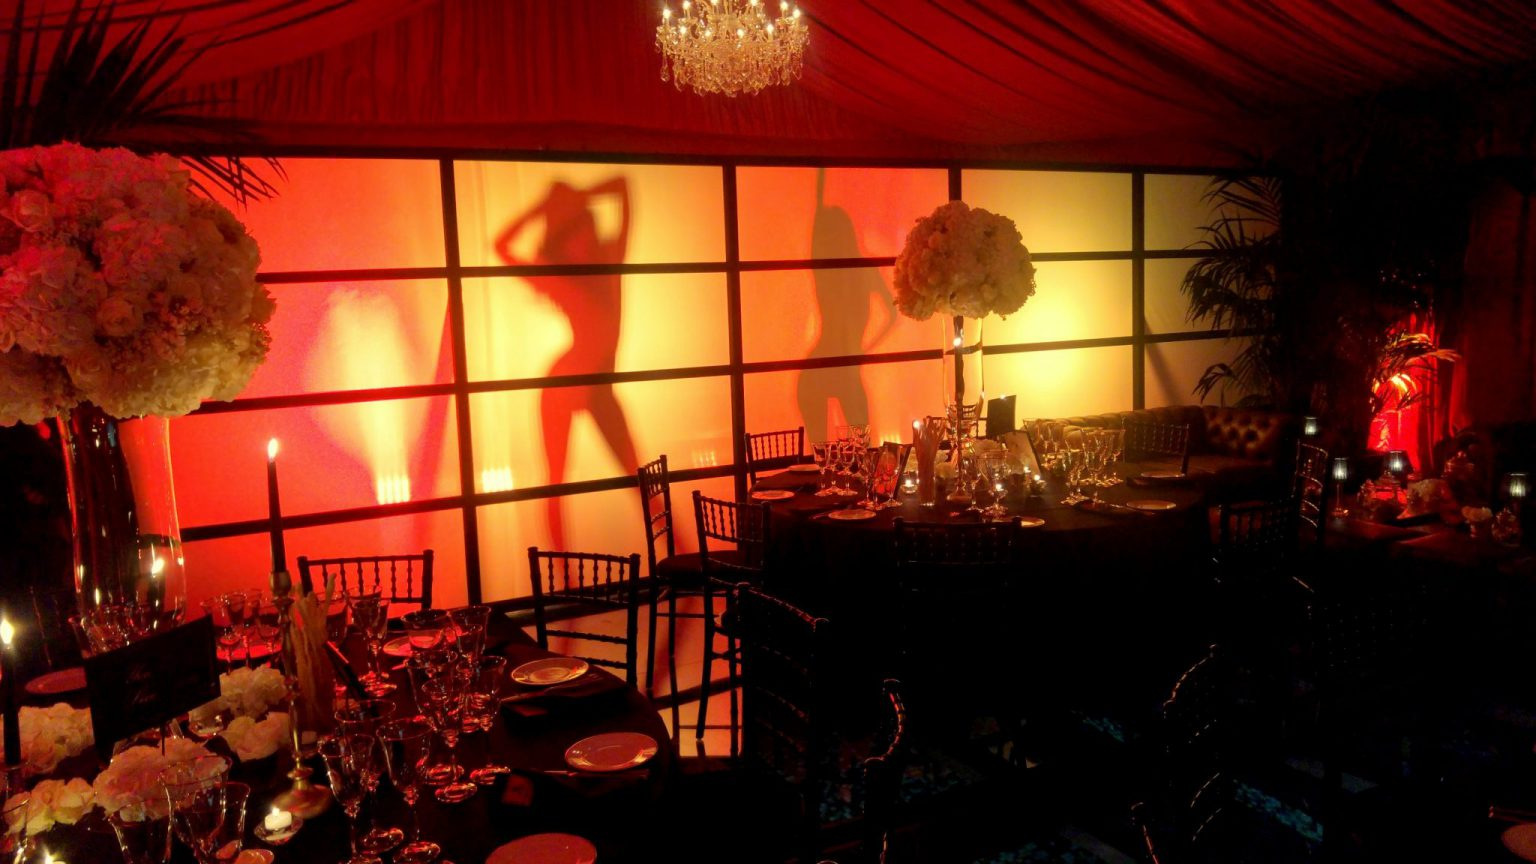 James Bond shadow dancing girls behind bespoke screen